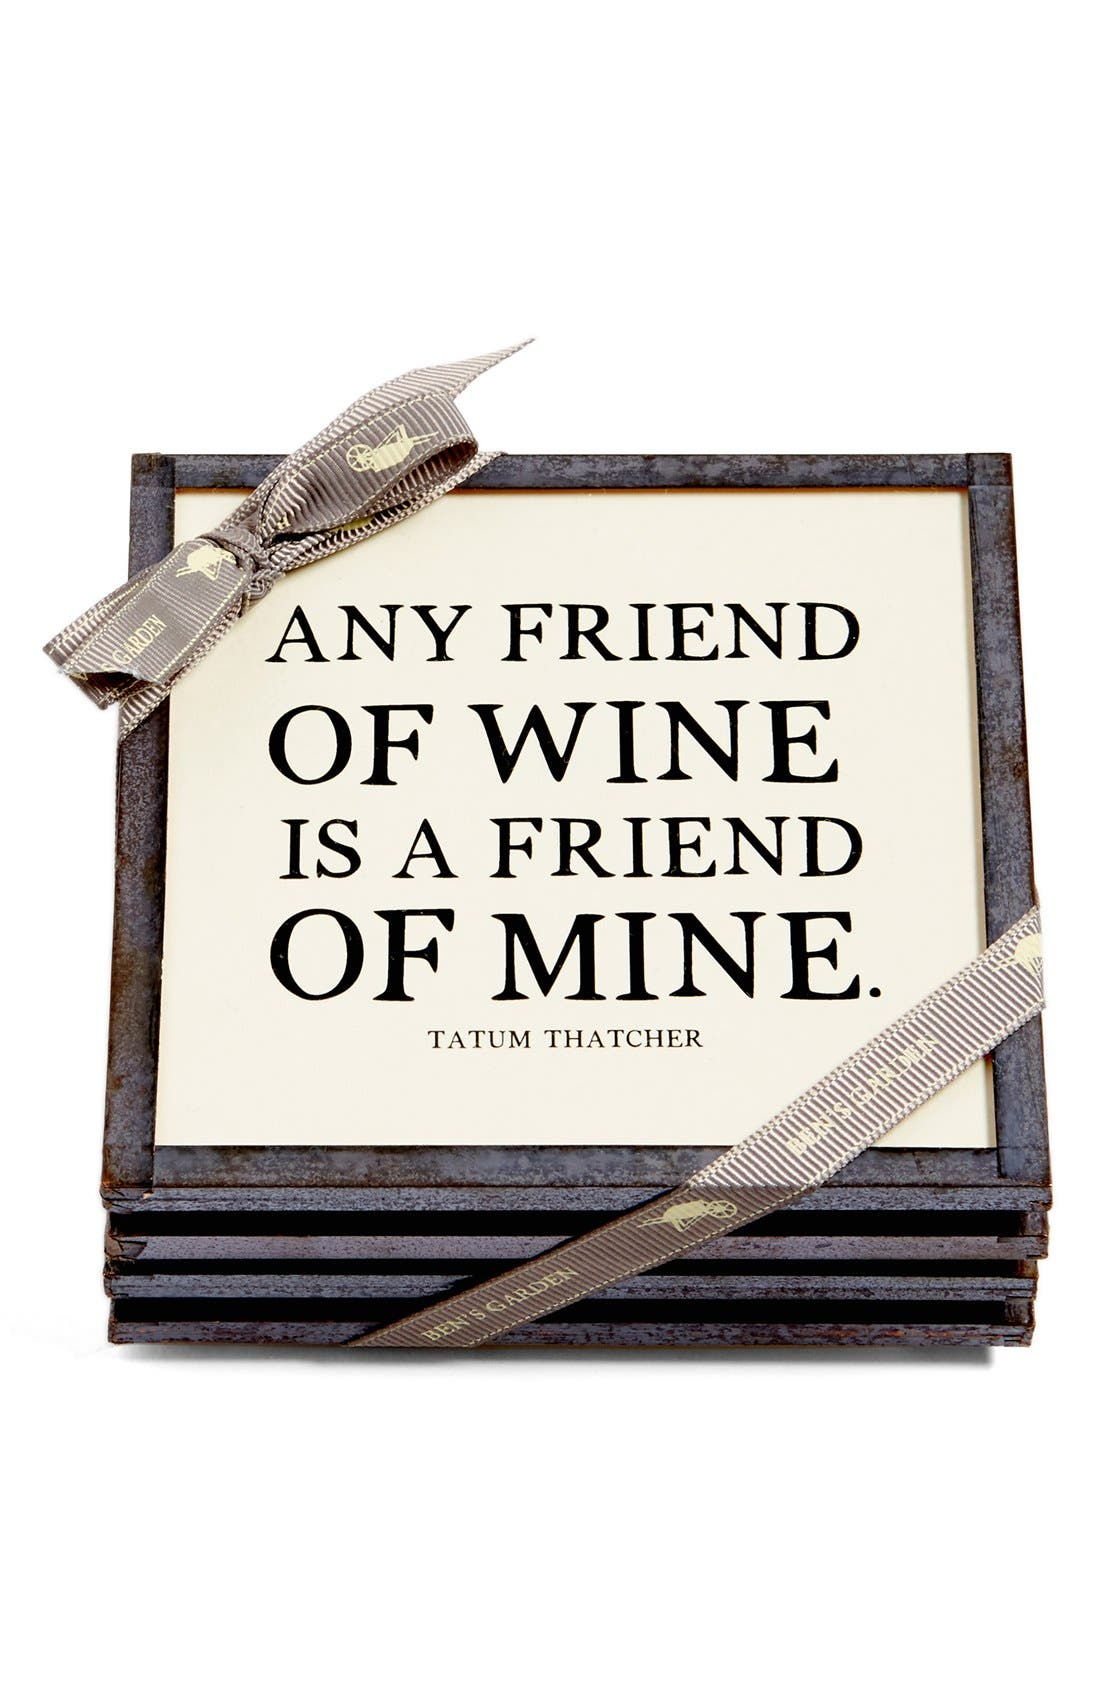 Alternate Image 1 Selected - Ben's Garden 'Any Friend of Wine' Coasters (Set of 4)